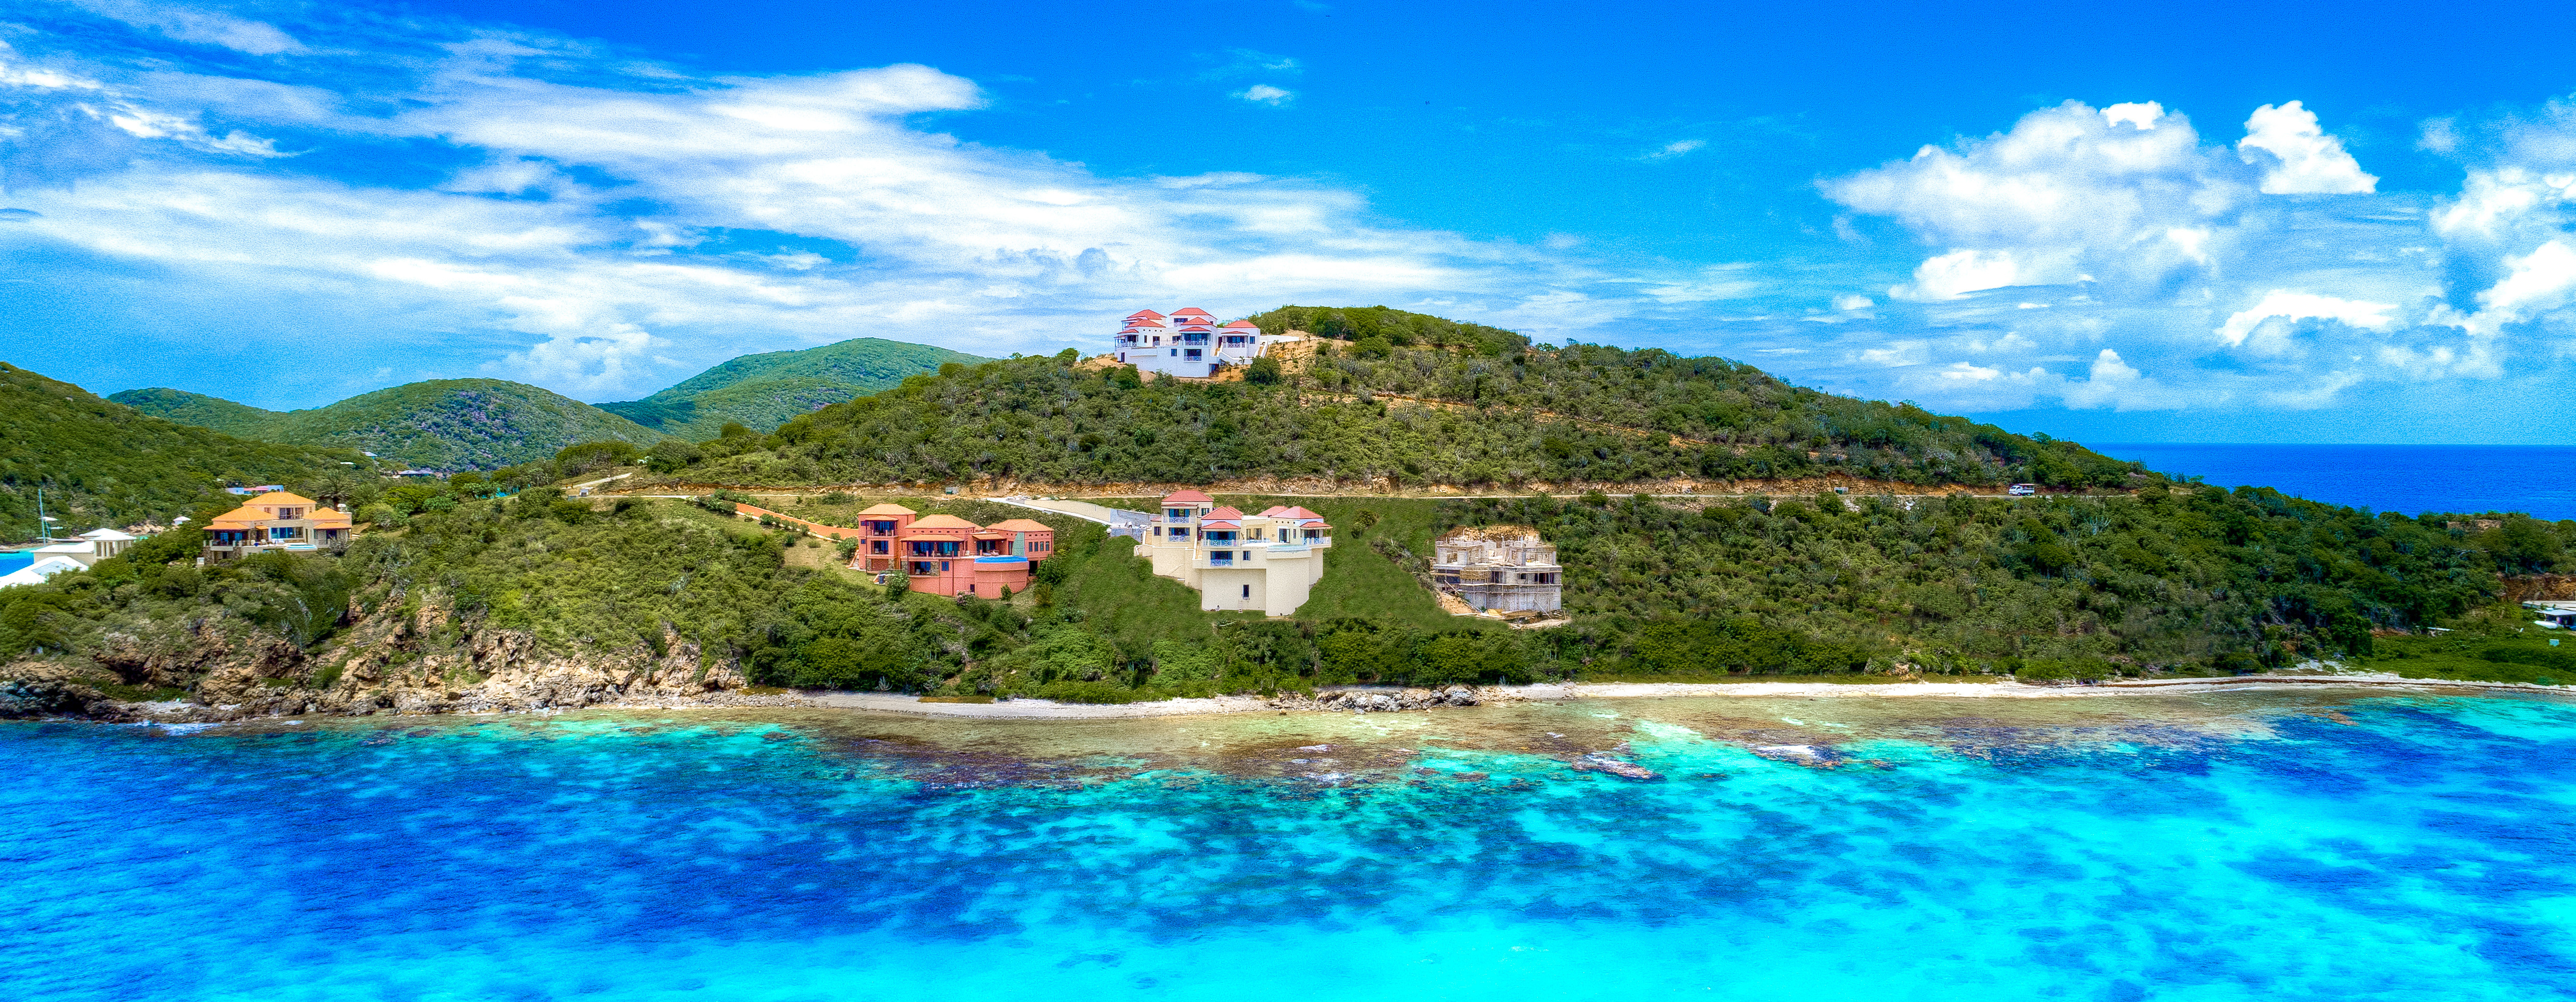 Finding Your Dream Home find your dream home on scrub island, bvi | superyachts